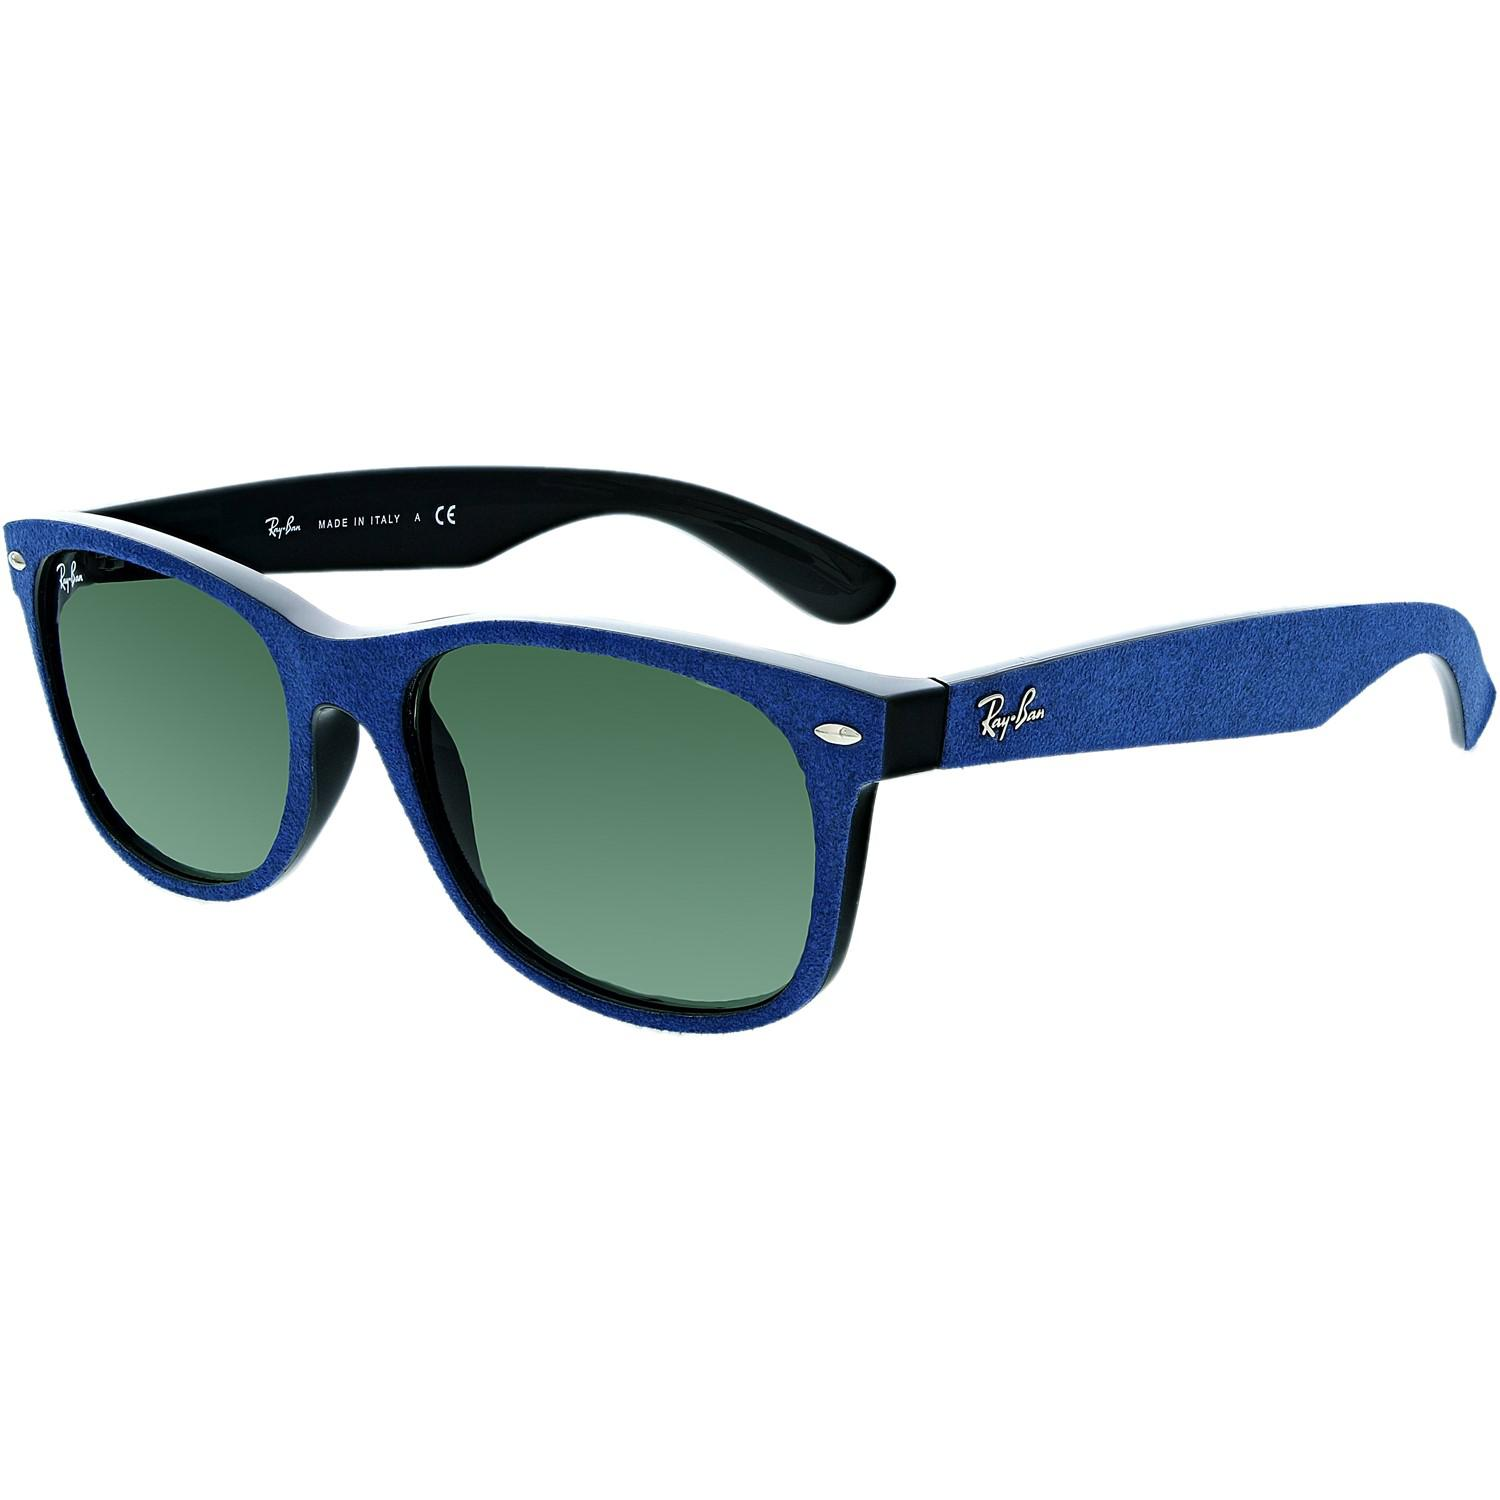 607026107aa Lyst - Ray-Ban New Wayfarer Rb2132-6239-55 Blue Square Sunglasses in ...